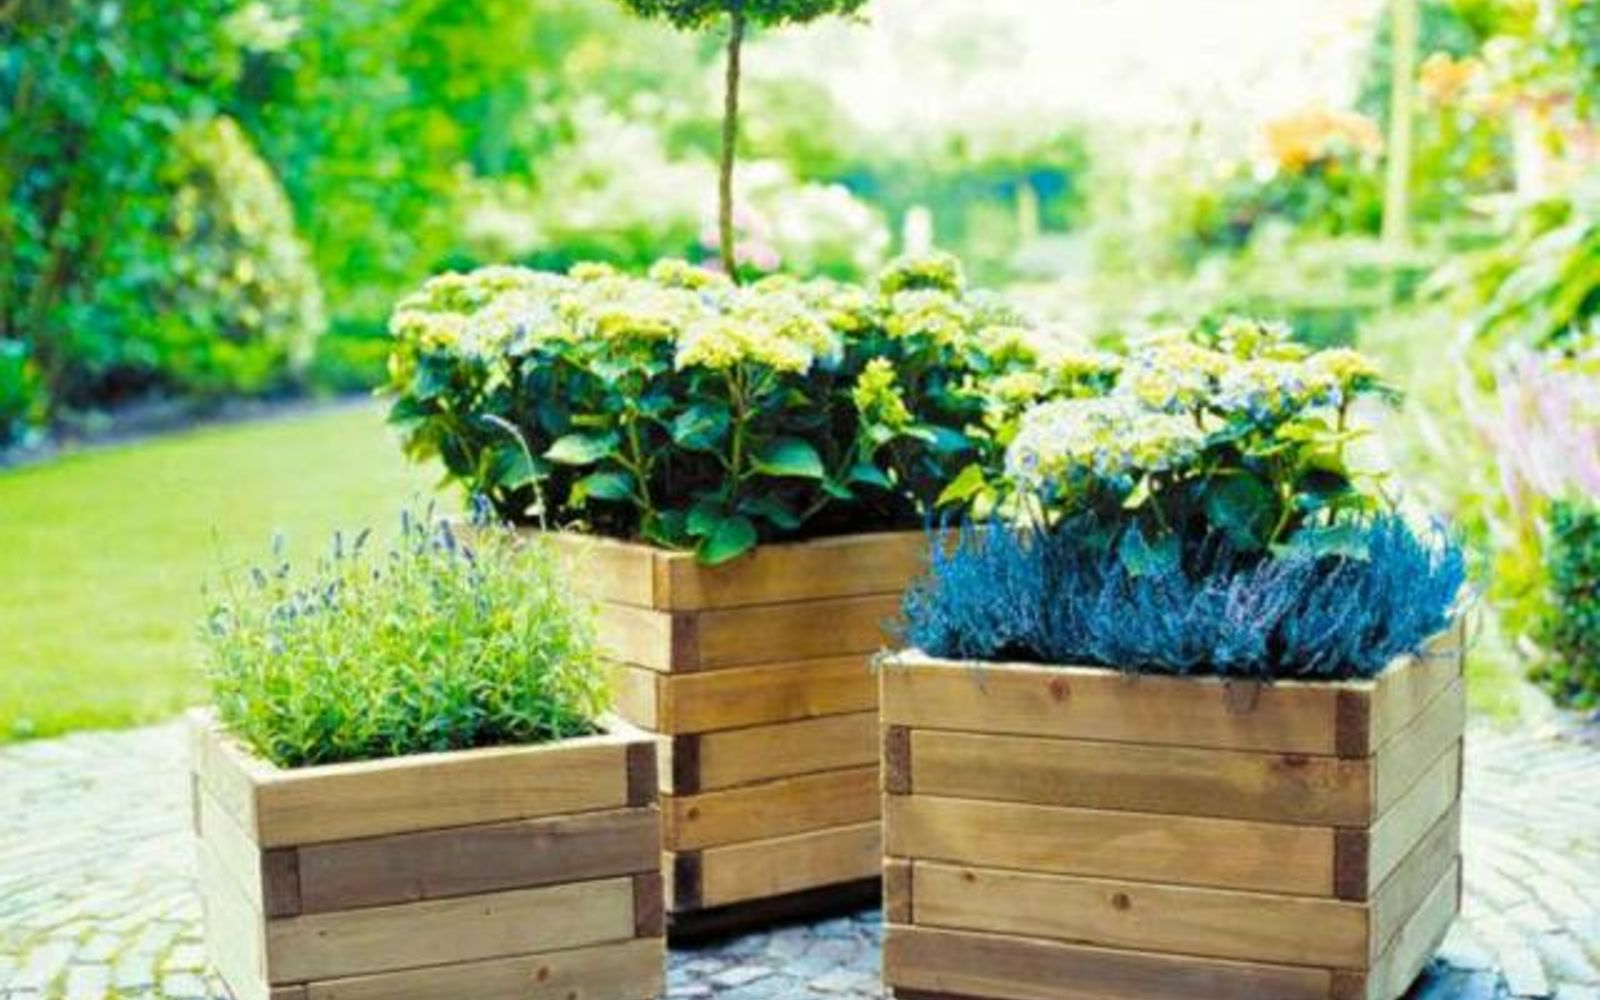 s 30 ways for you to style your garden, Use Pallets To Hold Your Flowers